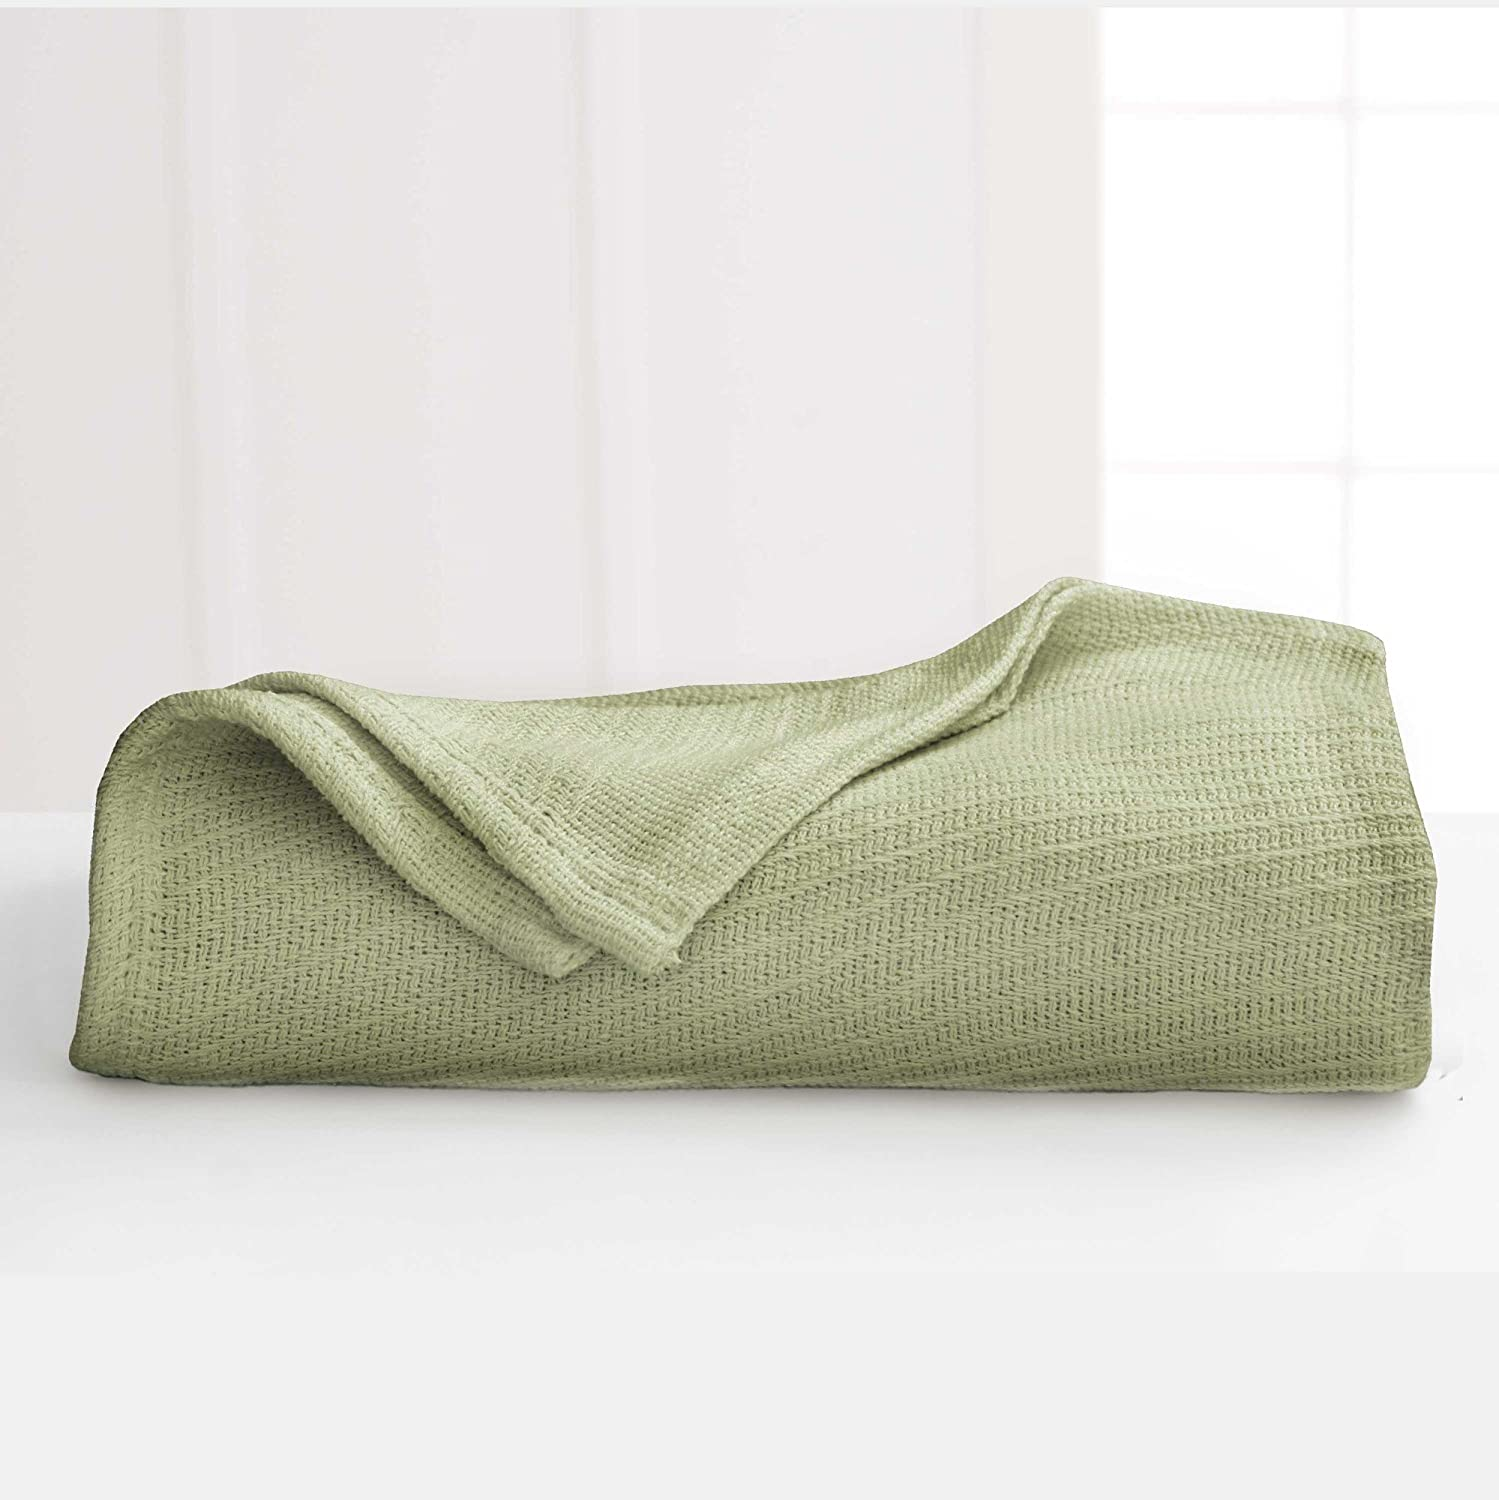 Martex Premium 100% Cotton Warm and Cozy Blanket Good for All Seasons, Lightweight and Breathable, Textured, Queen, Sage